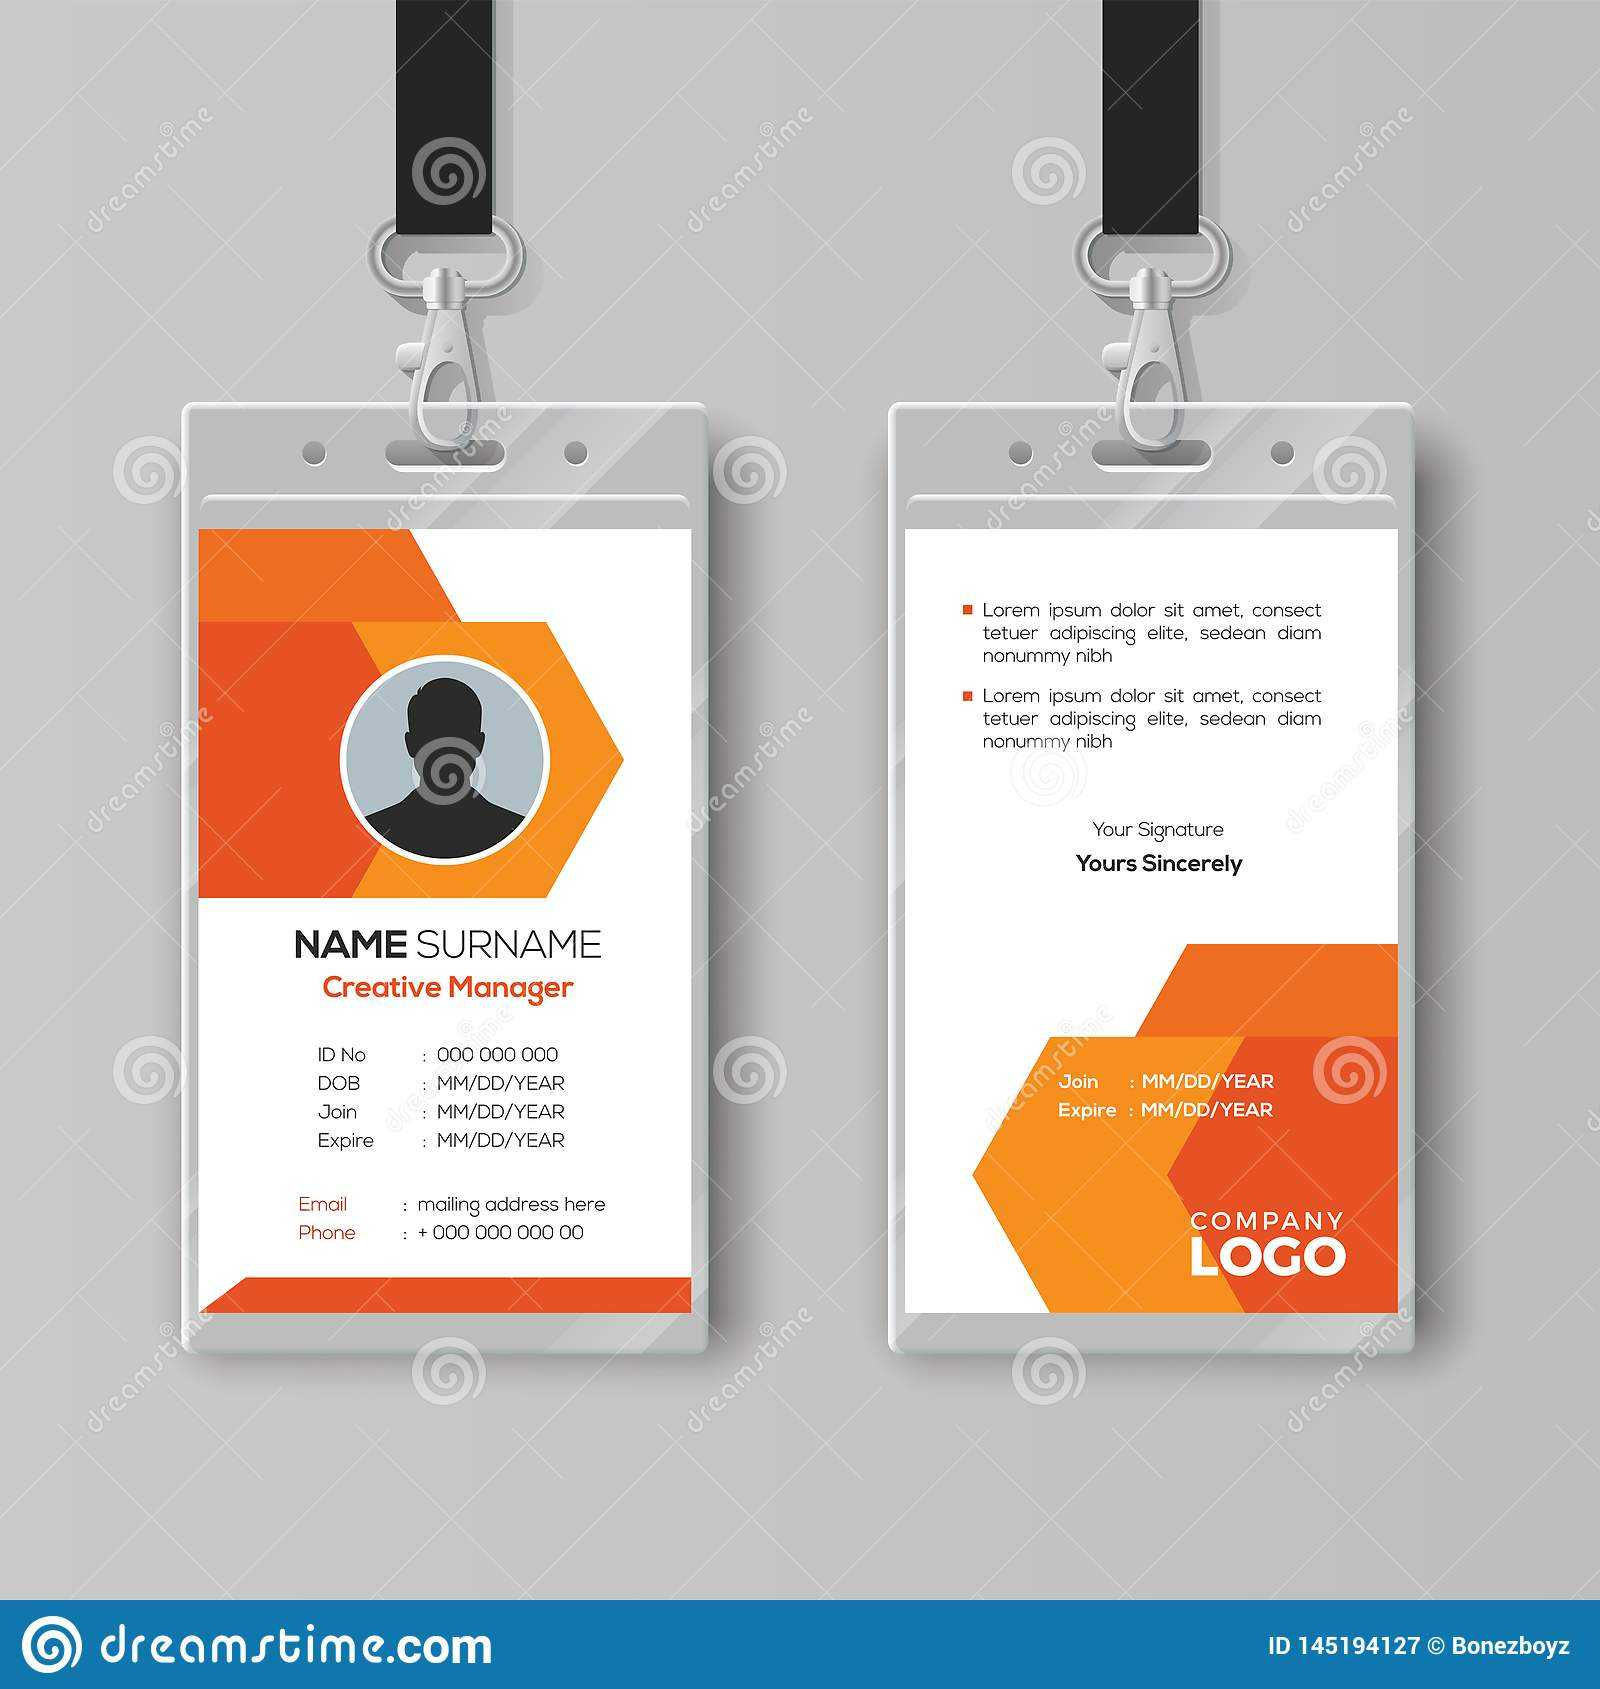 Abstract Orange Id Card Design Template Stock Vector In Company Id Card Design Template